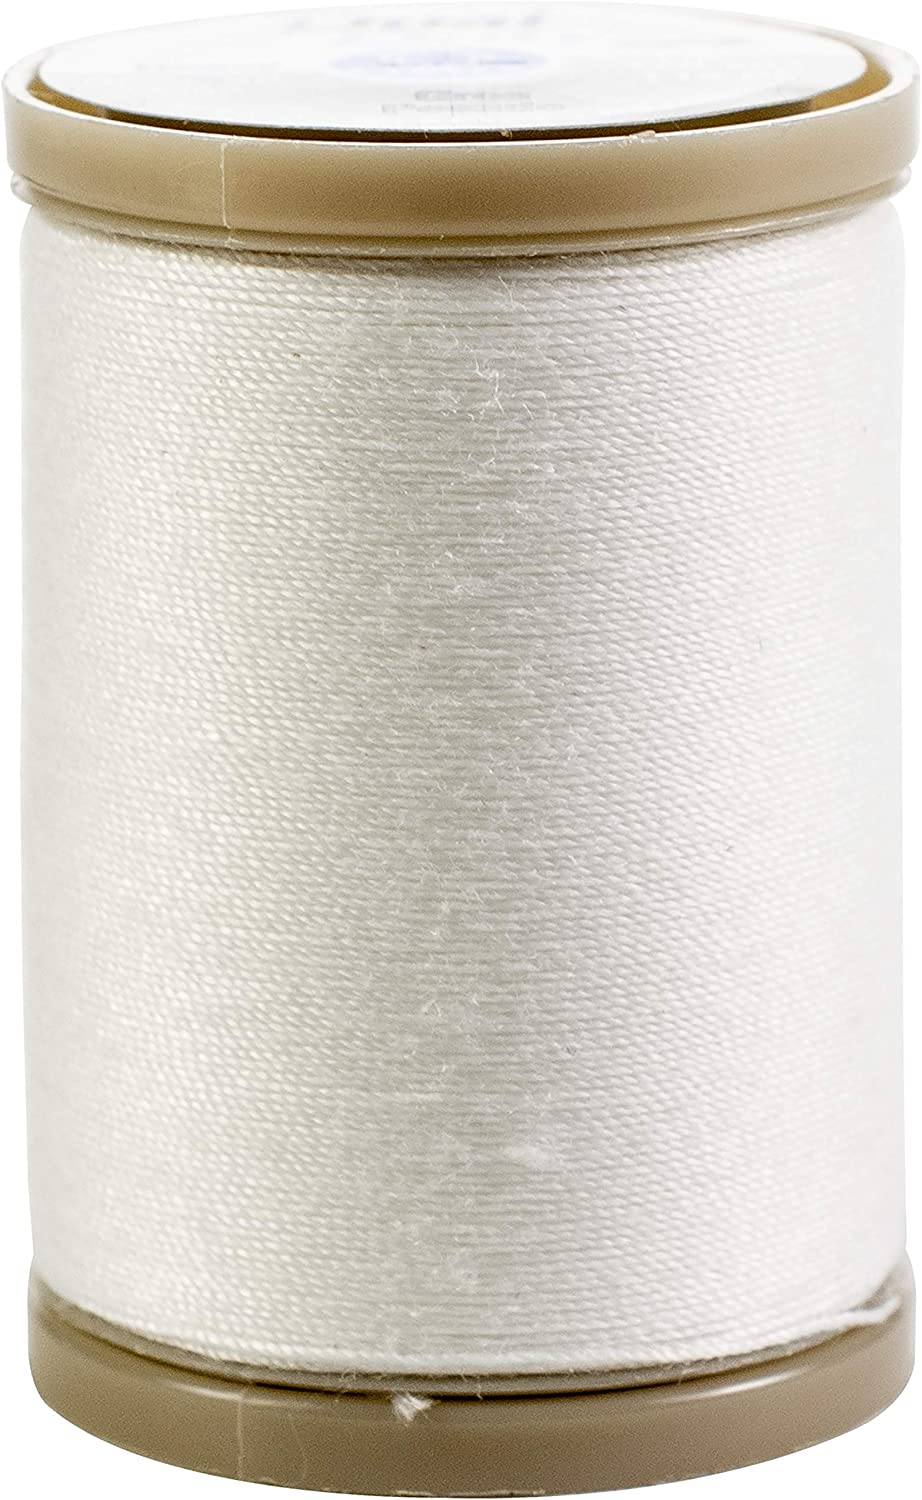 Ranking Factory outlet TOP3 Coats Clark Dual Duty XP Heavy S950-010 125 Yards Thread White